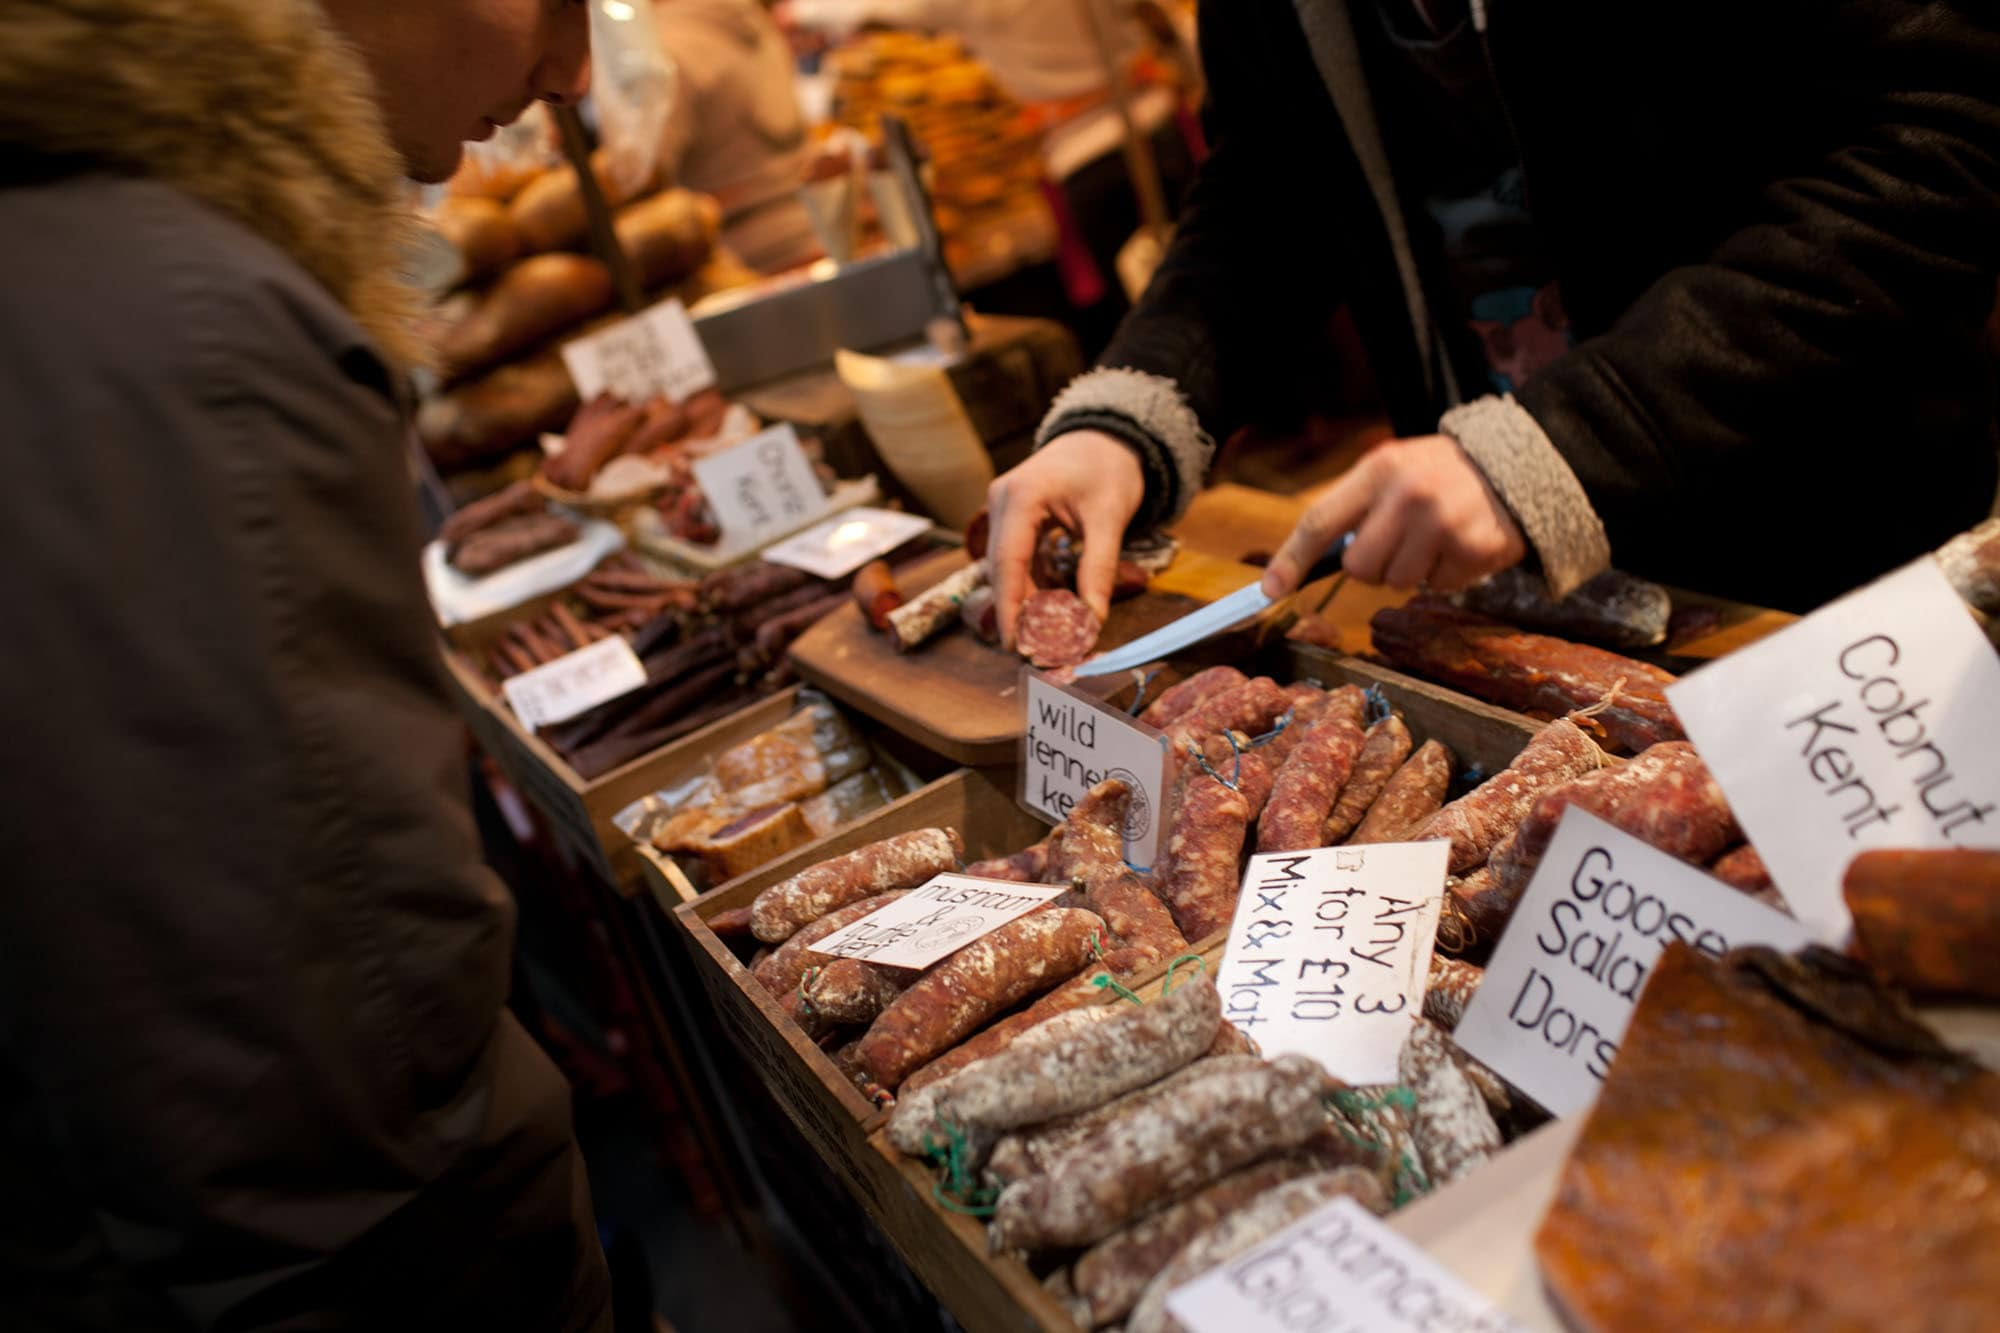 Sausages at Borough Market in London, England